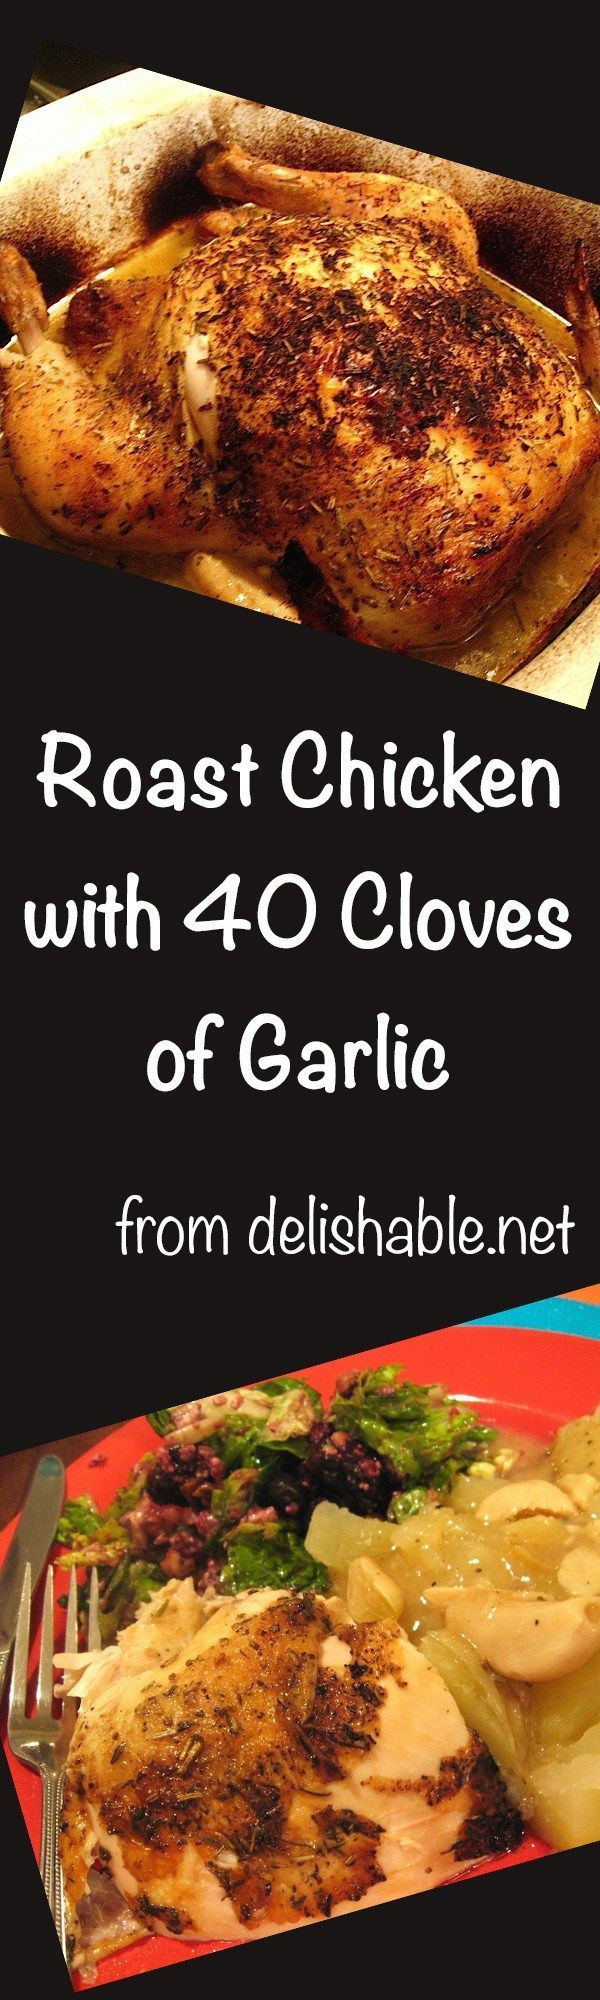 Roast Chicken with 40 Cloves of Garlic recipe - simmered in wine, the garlic mellows, giving the sauce a rich flavor, rivaling any favorite chicken entre. | delishable.net